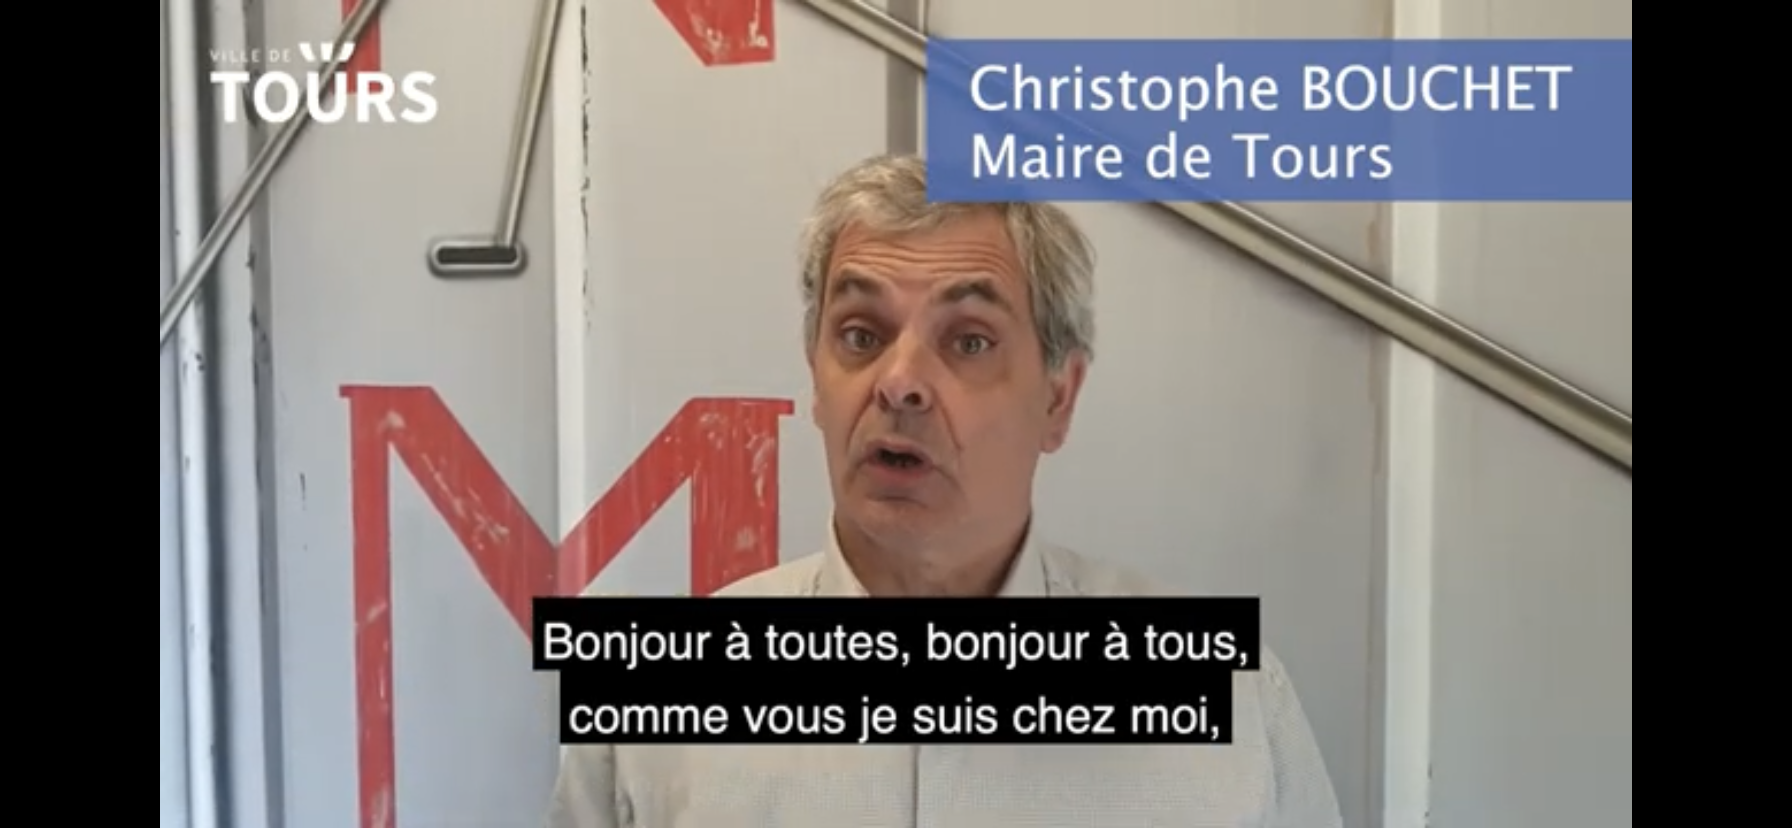 (CITERADIO) Point de situation Covid-19 du 2 mai 2020 par le Maire de Tours, Christophe Bouchet